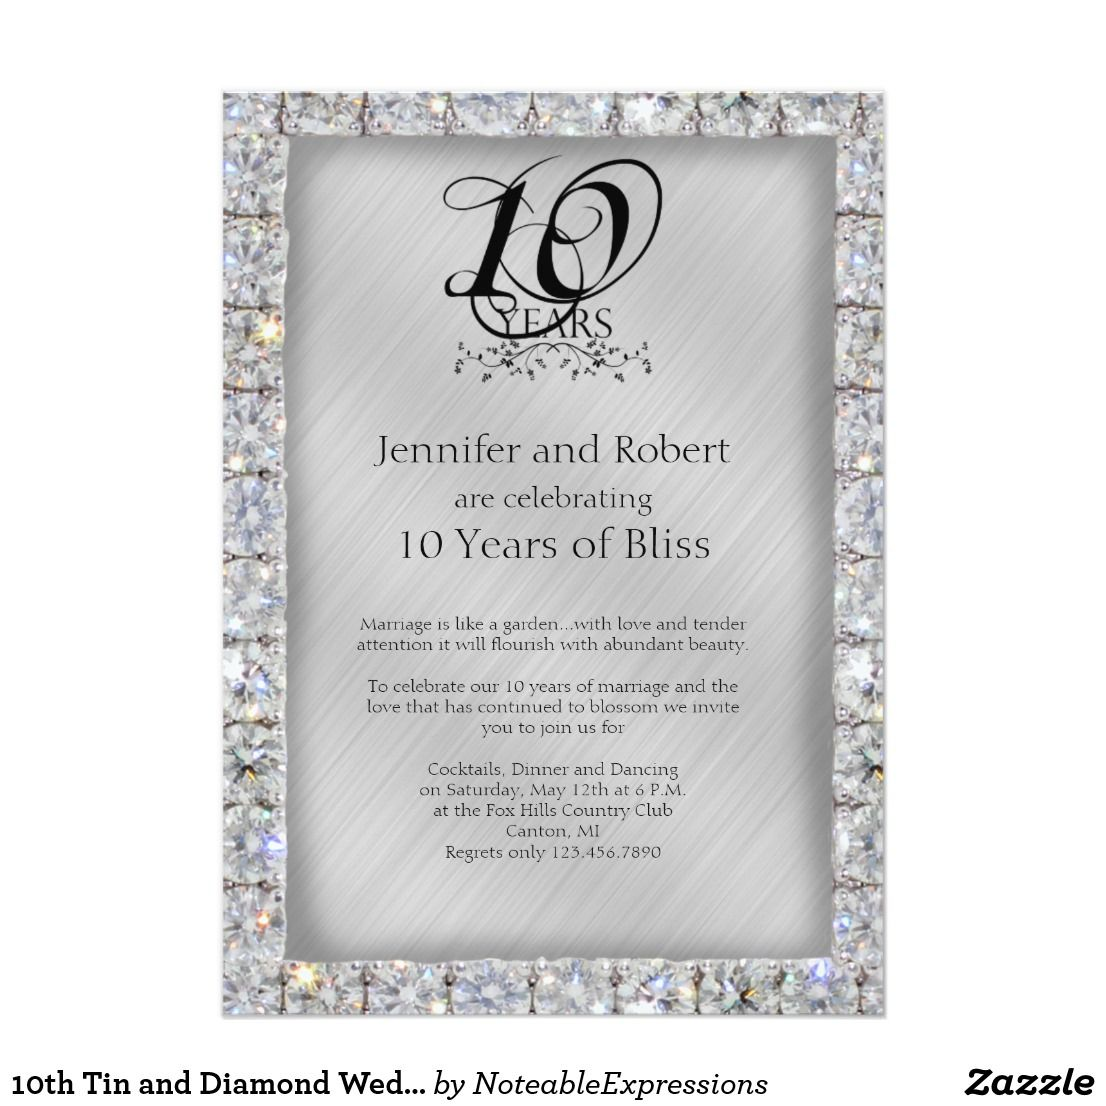 10th Tin And Diamond Wedding Anniversary Invitation Zazzle Com Anniversary Invitations Wedding Anniversary Invitations Diamond Wedding Anniversary Cards